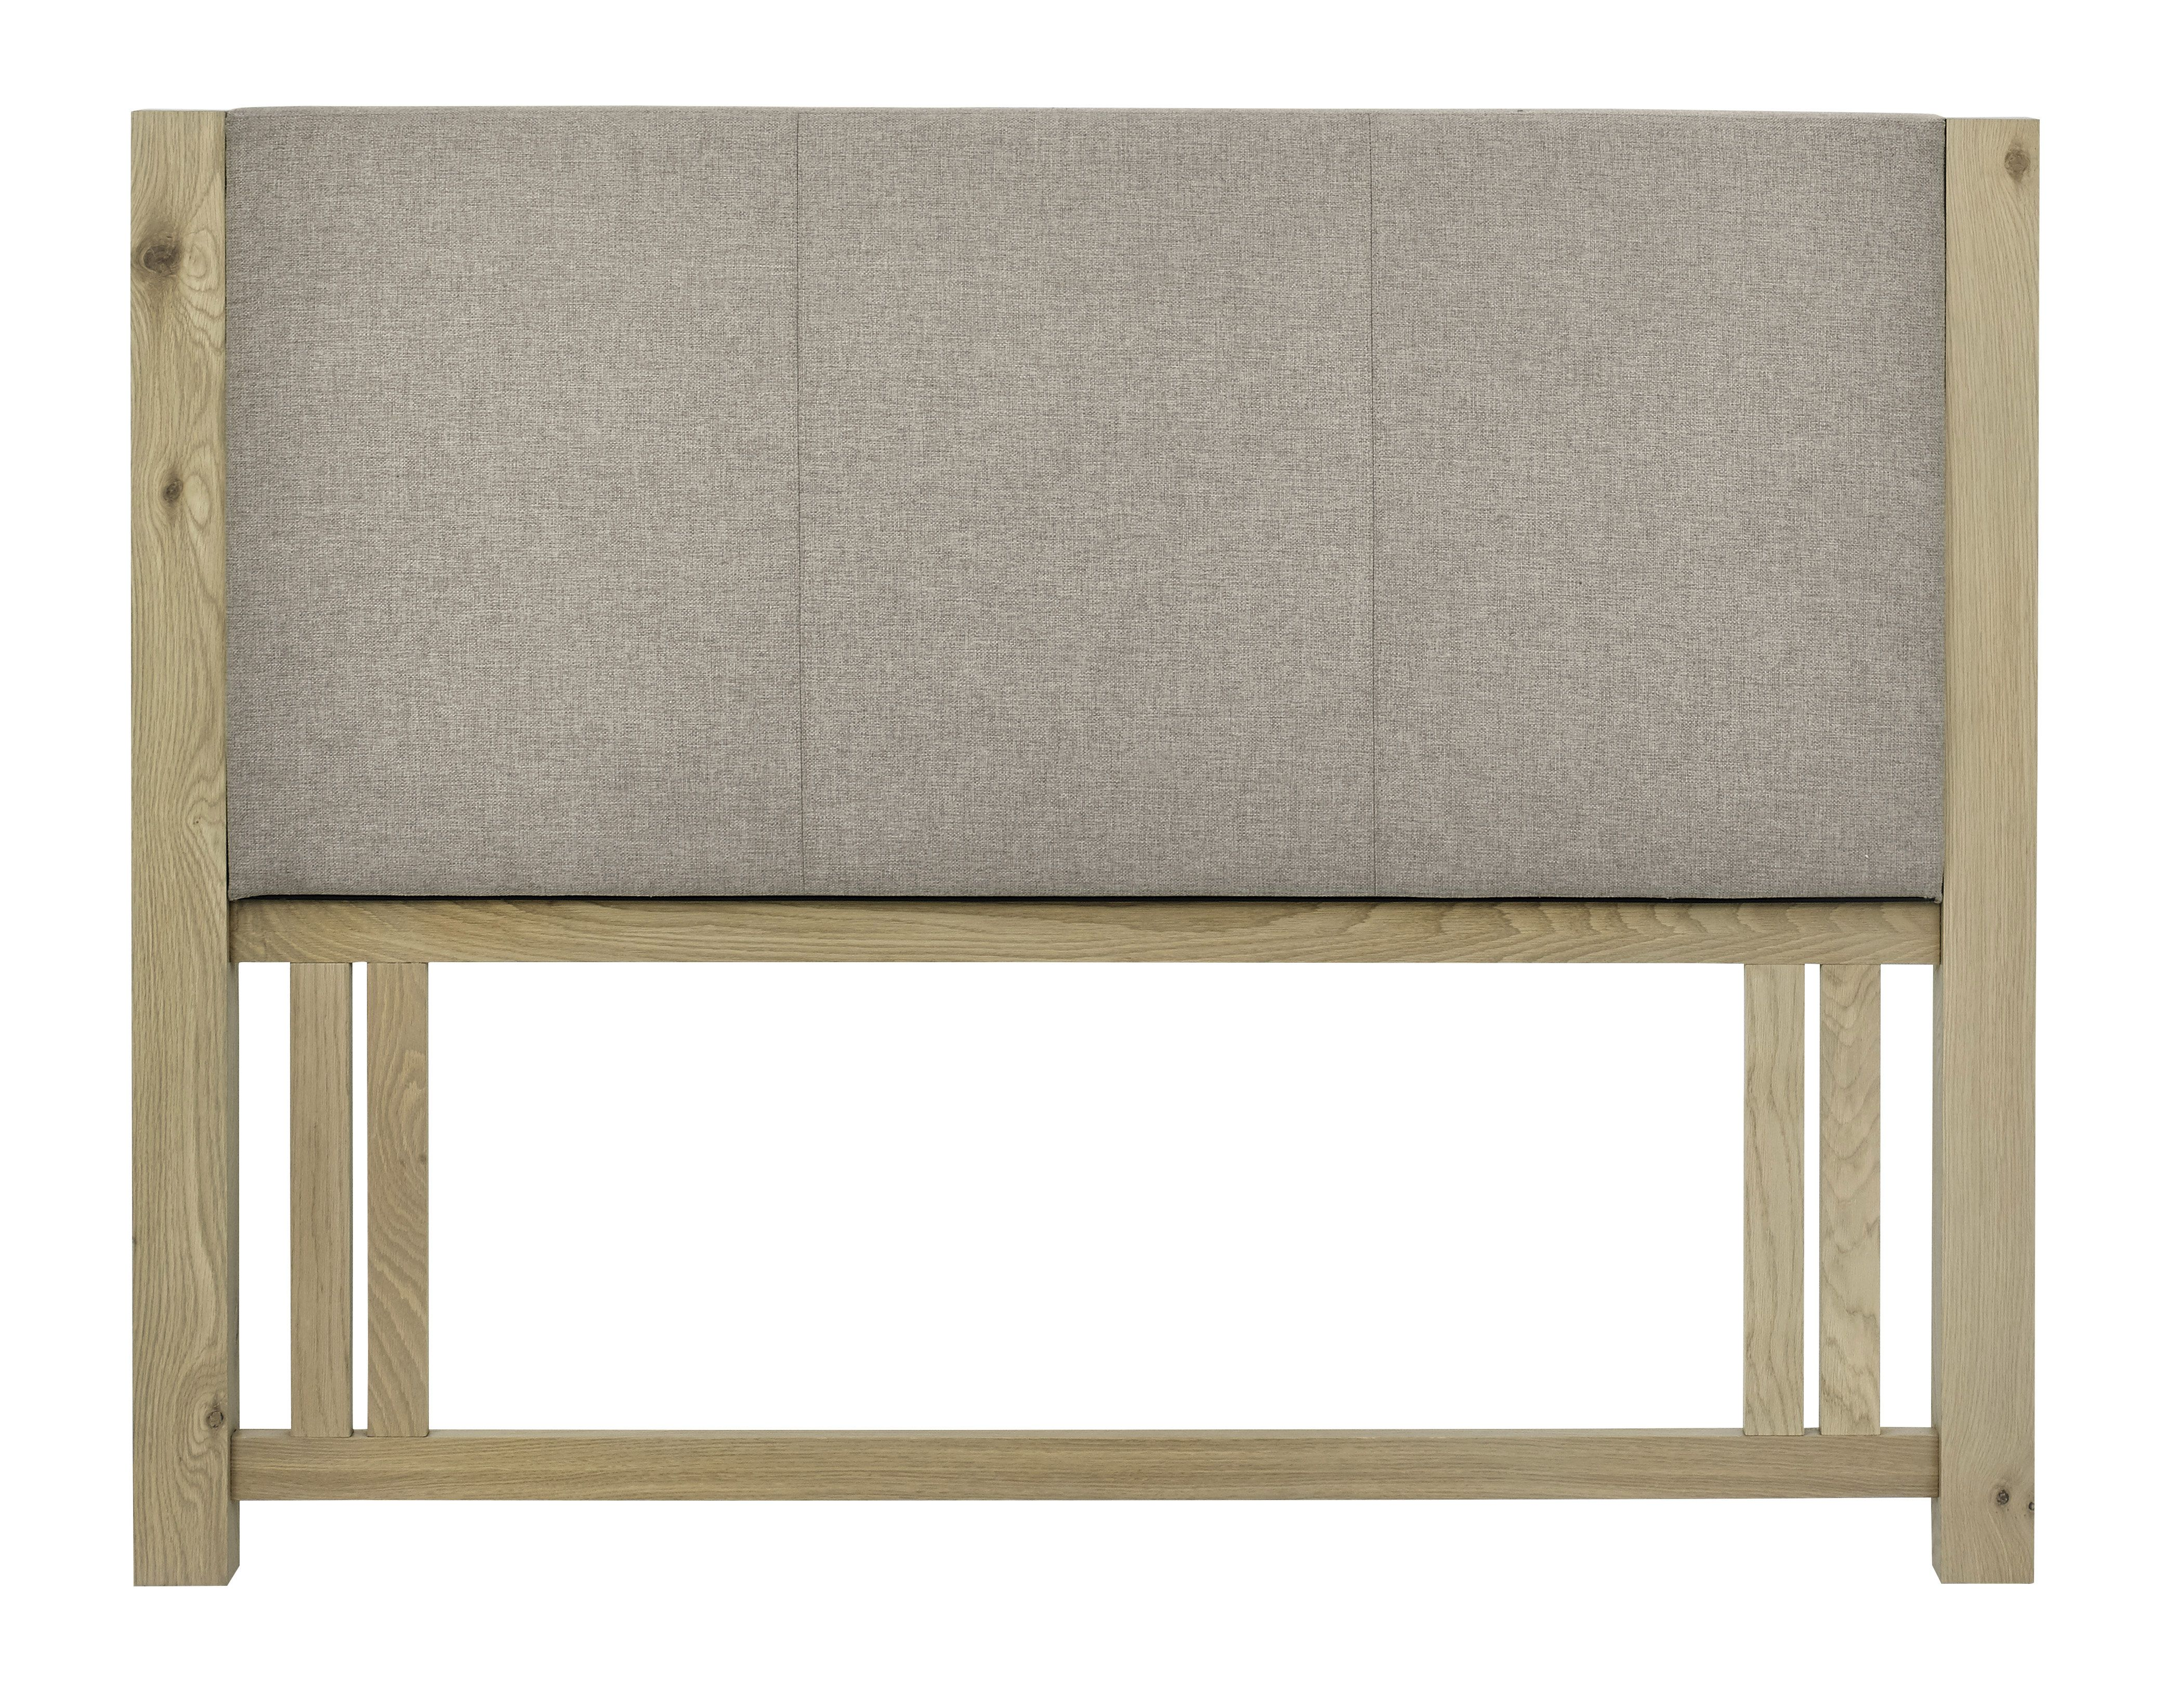 Turin aged oak double upholstered headboard contemporary and stylish